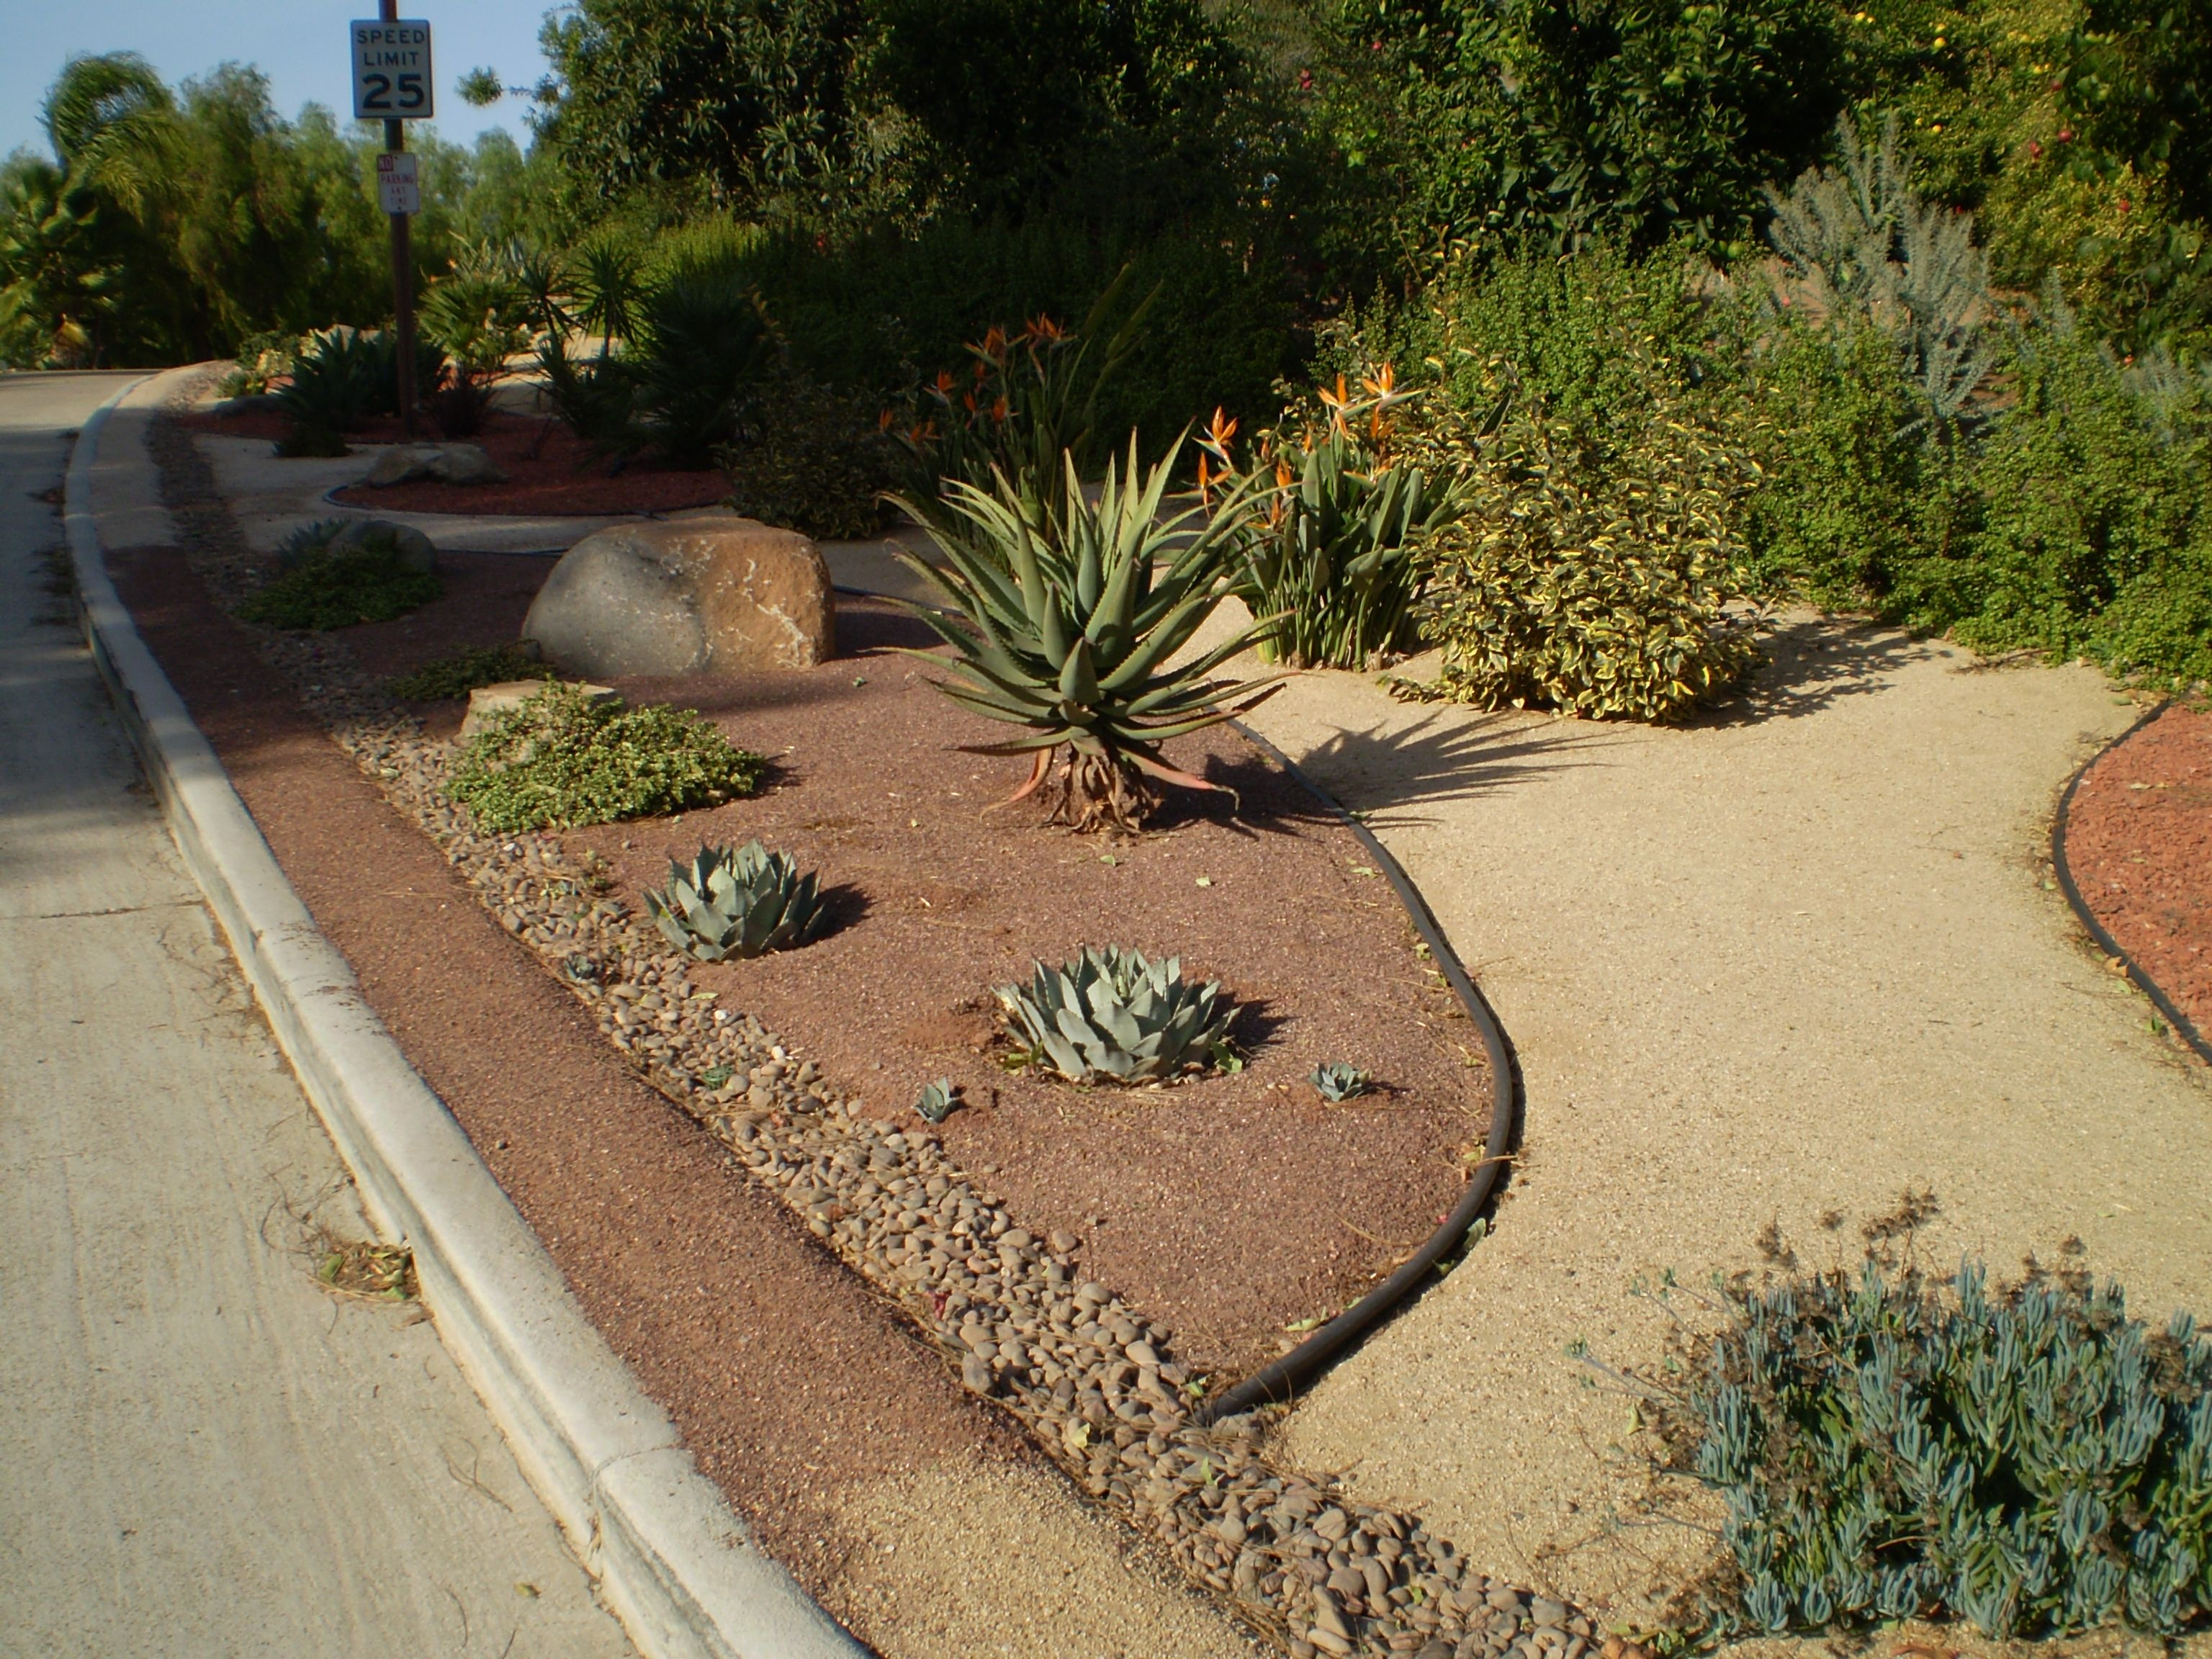 How To Install A Decomposed Granite Pathway For The Yard